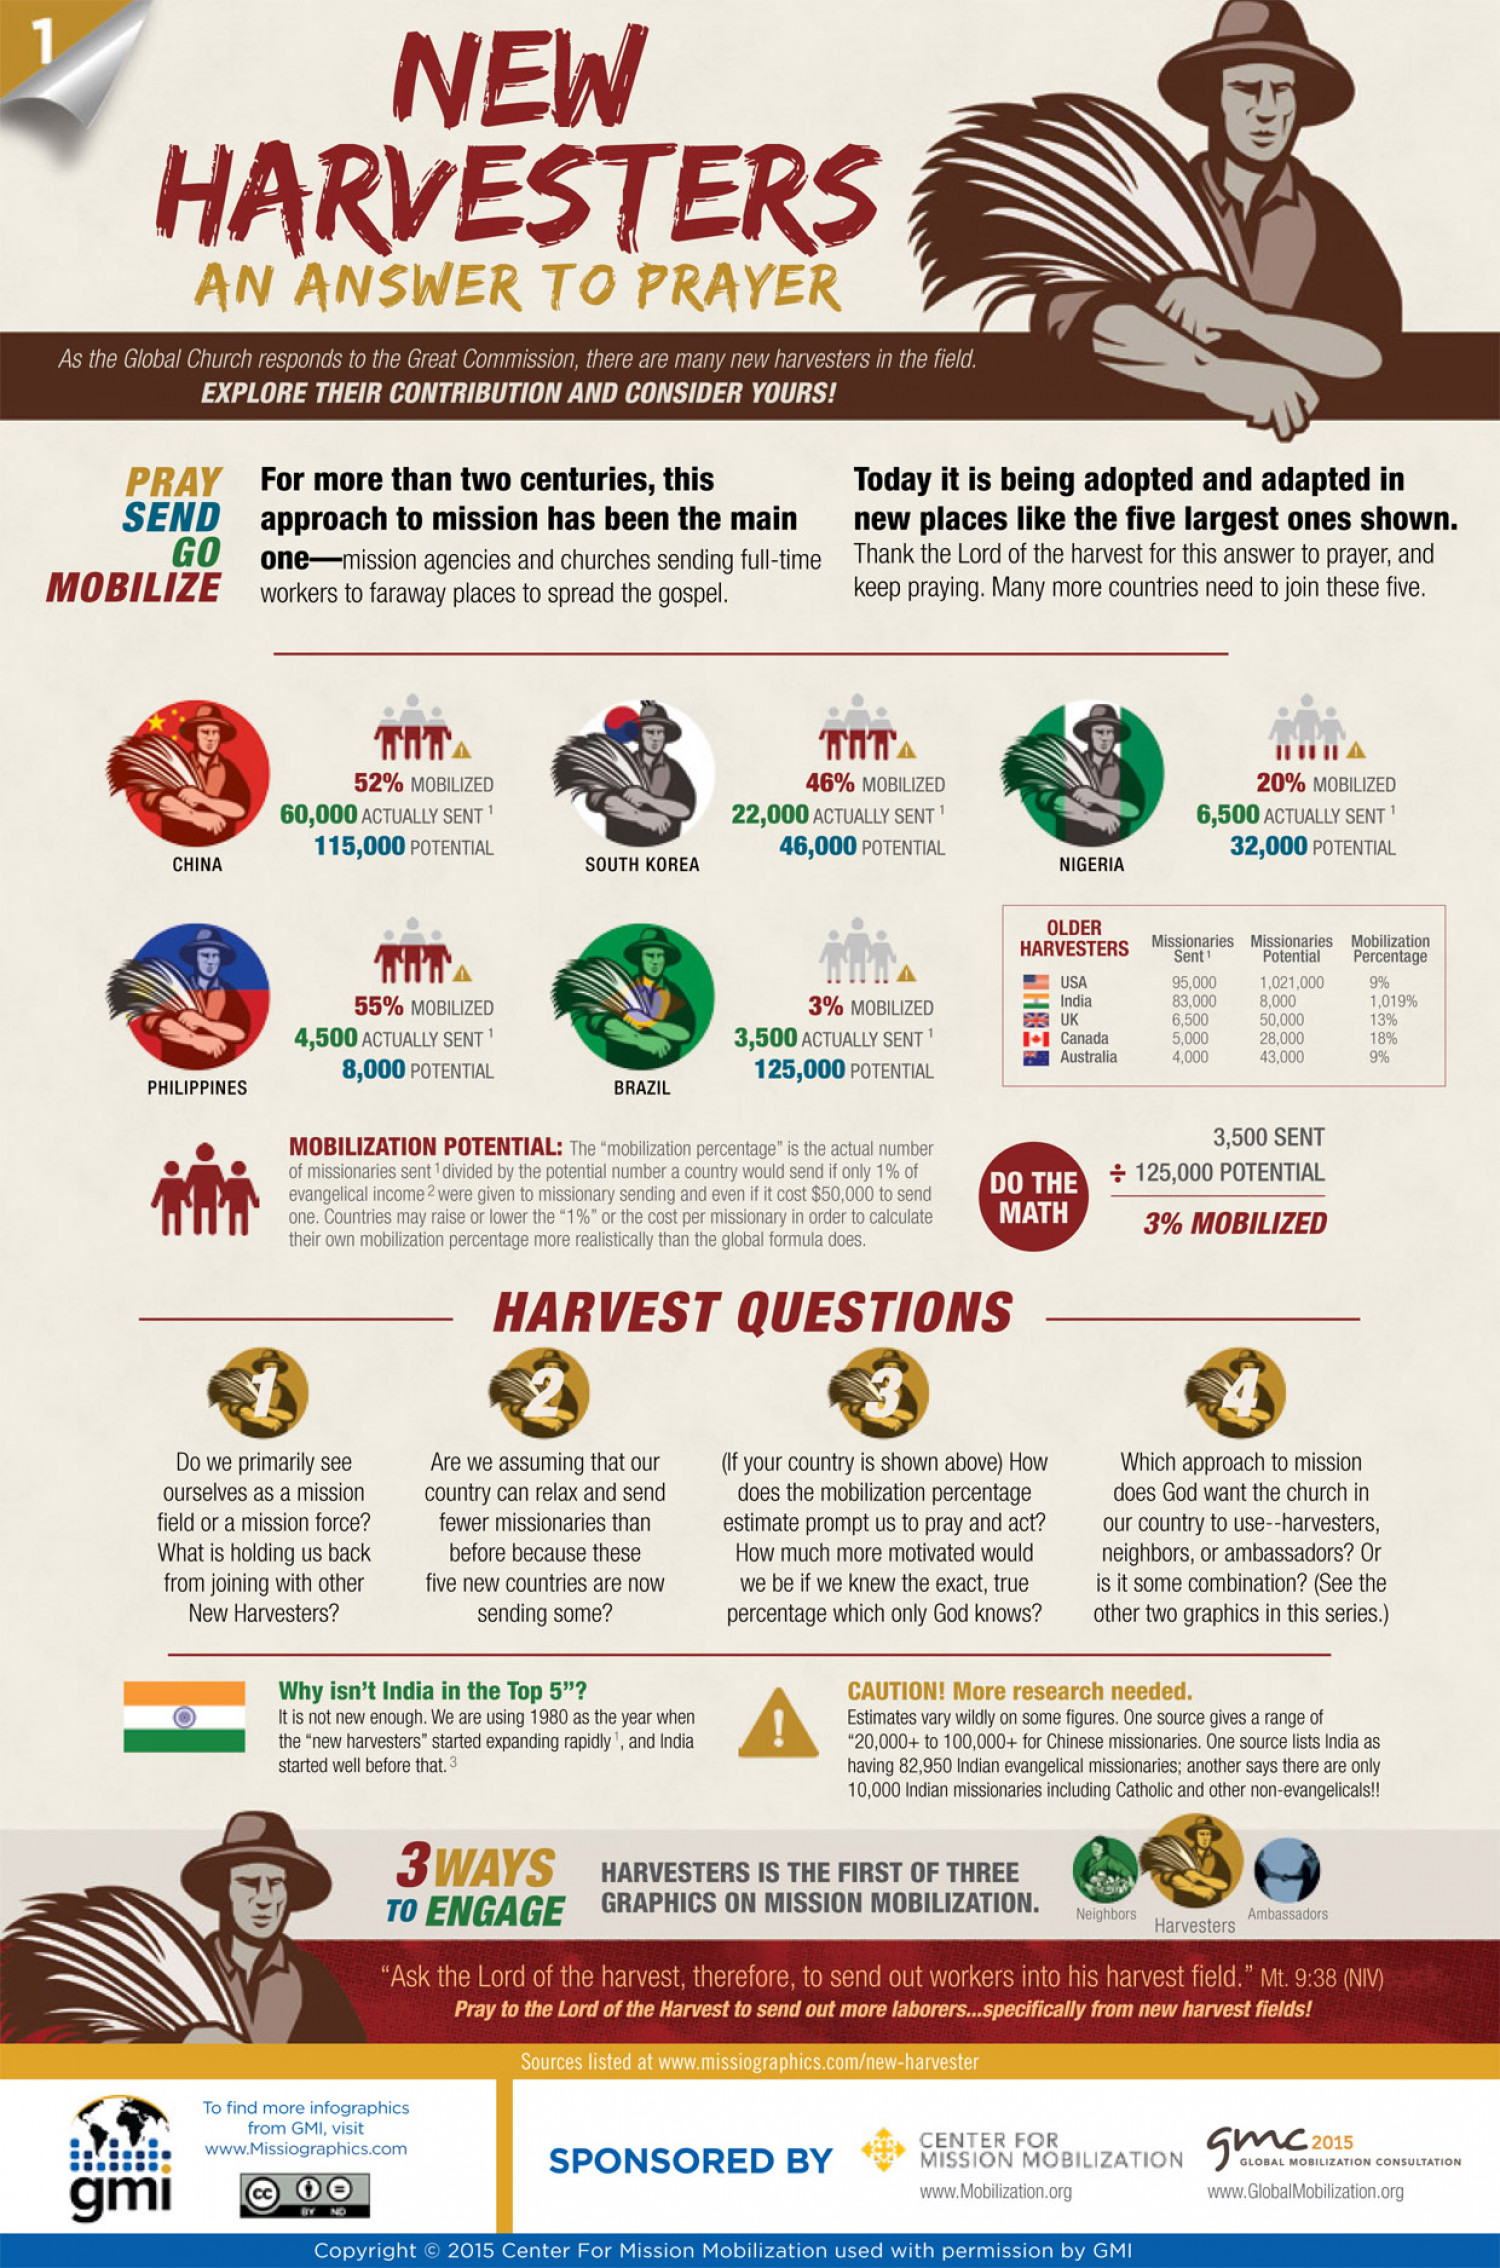 Mobilizing New Harvesters Infographic